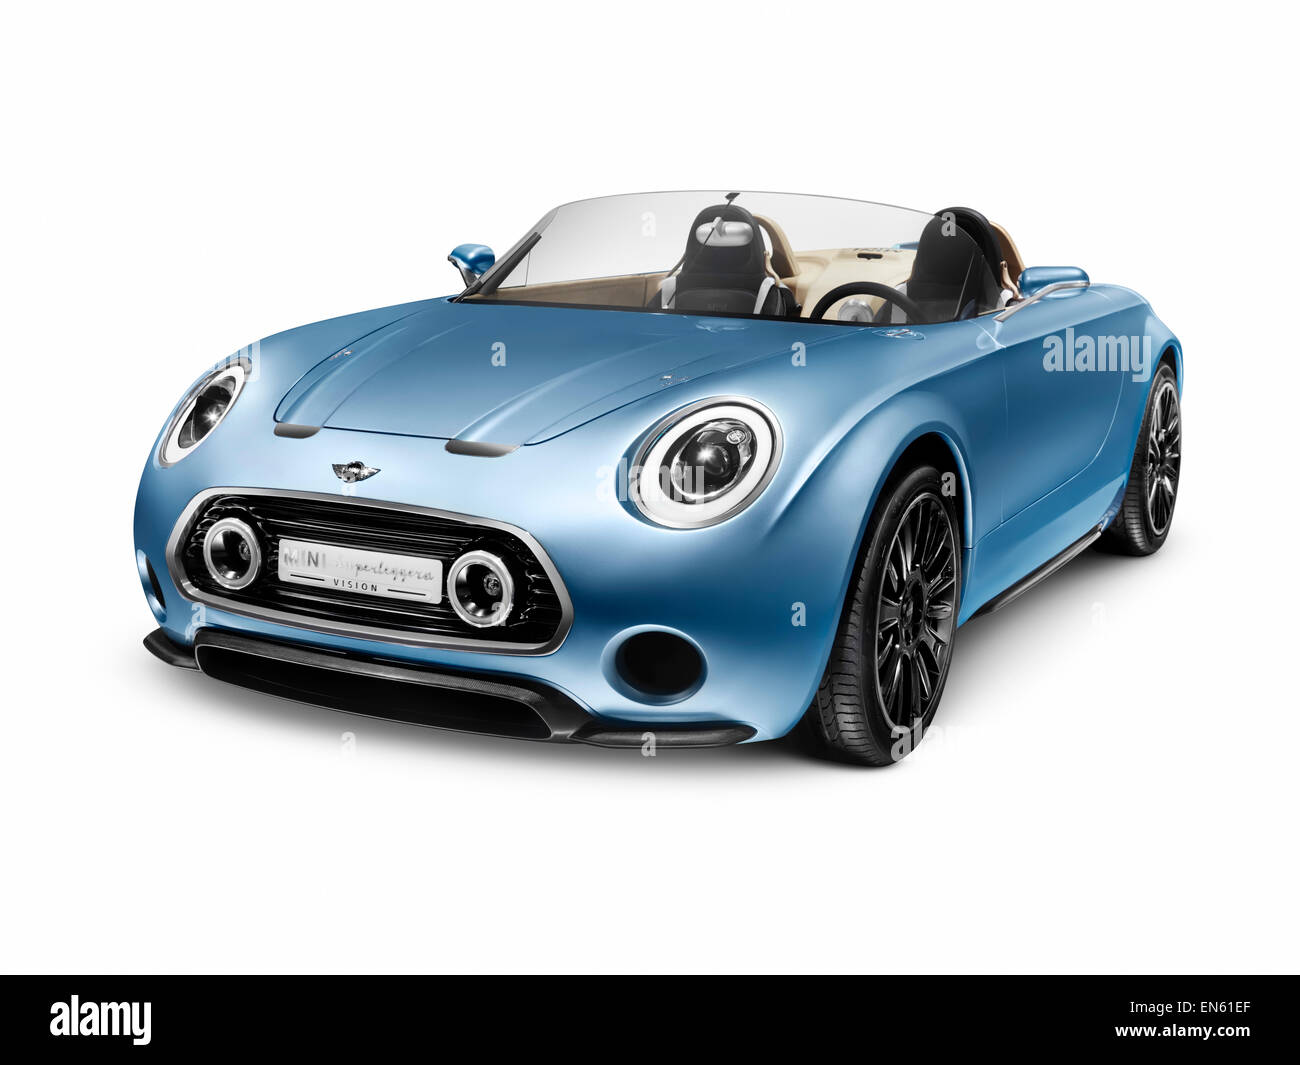 MINI Superleggera 2015 British-Italian roadster compact Vision concept car isolé sur fond blanc avec clipping Photo Stock